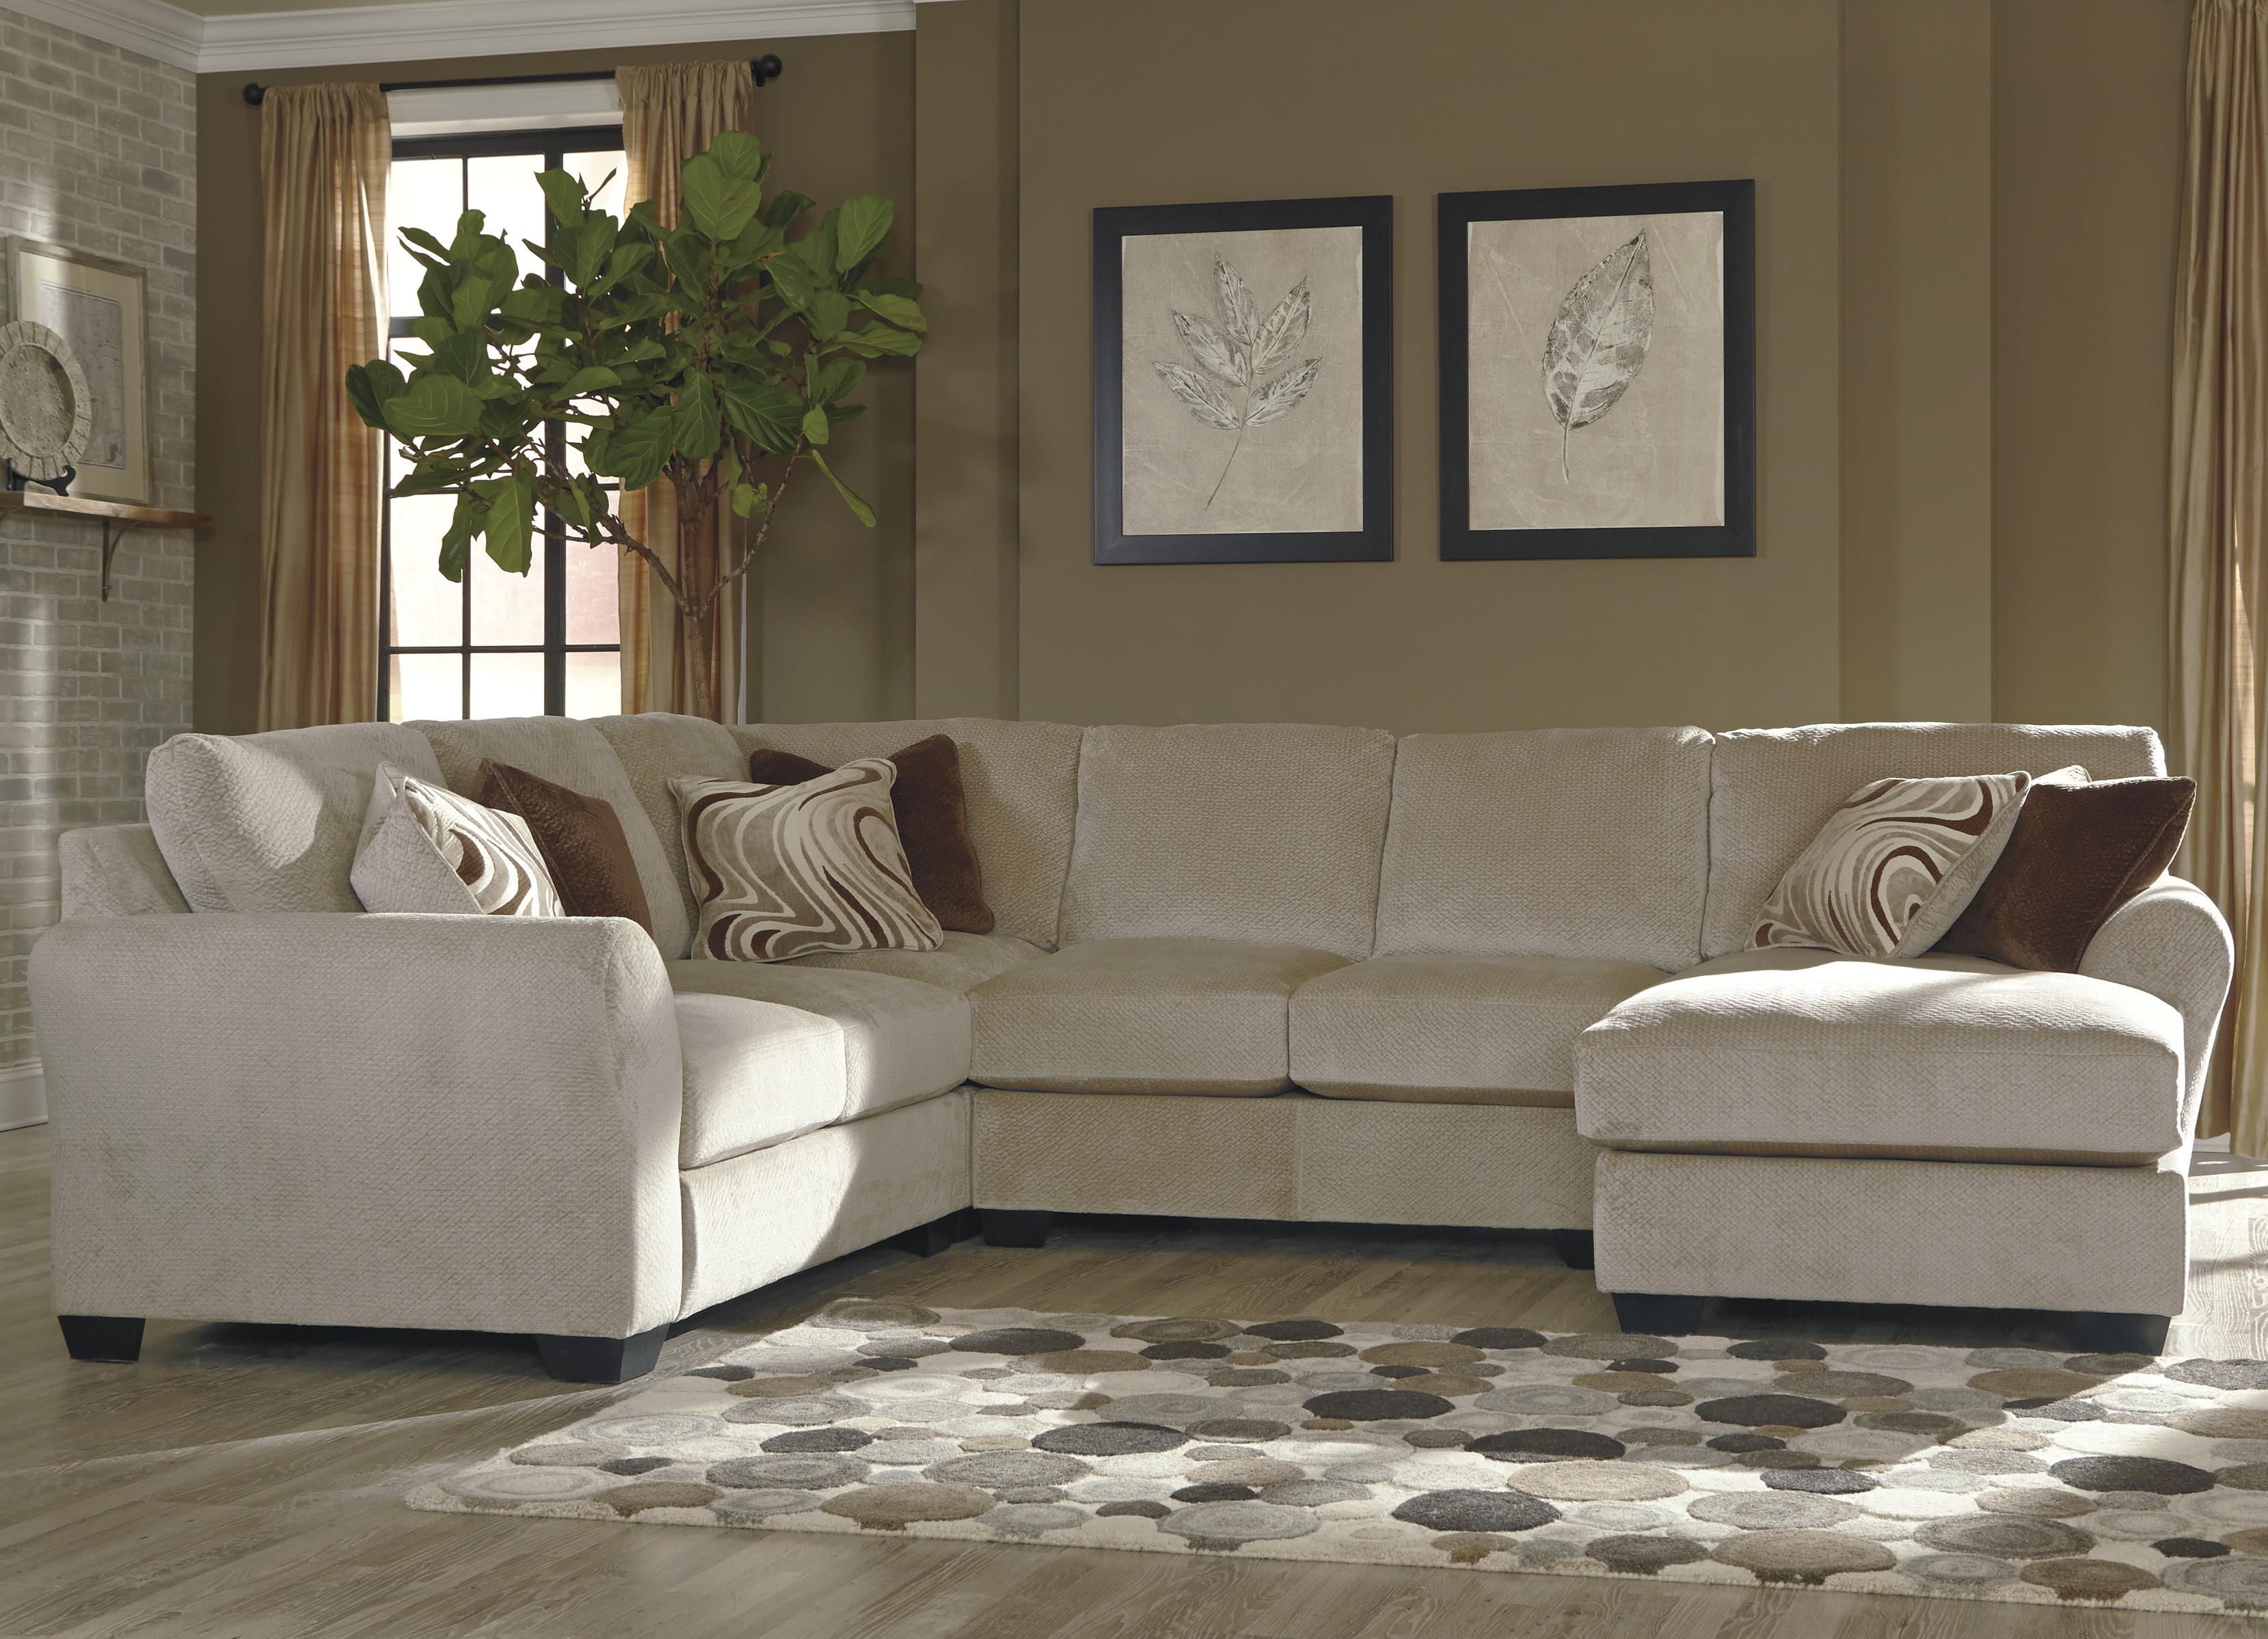 Benchcraft Hazes 4-Piece Sectional w/ Chaise - Item Number: 6570155+77+34+17